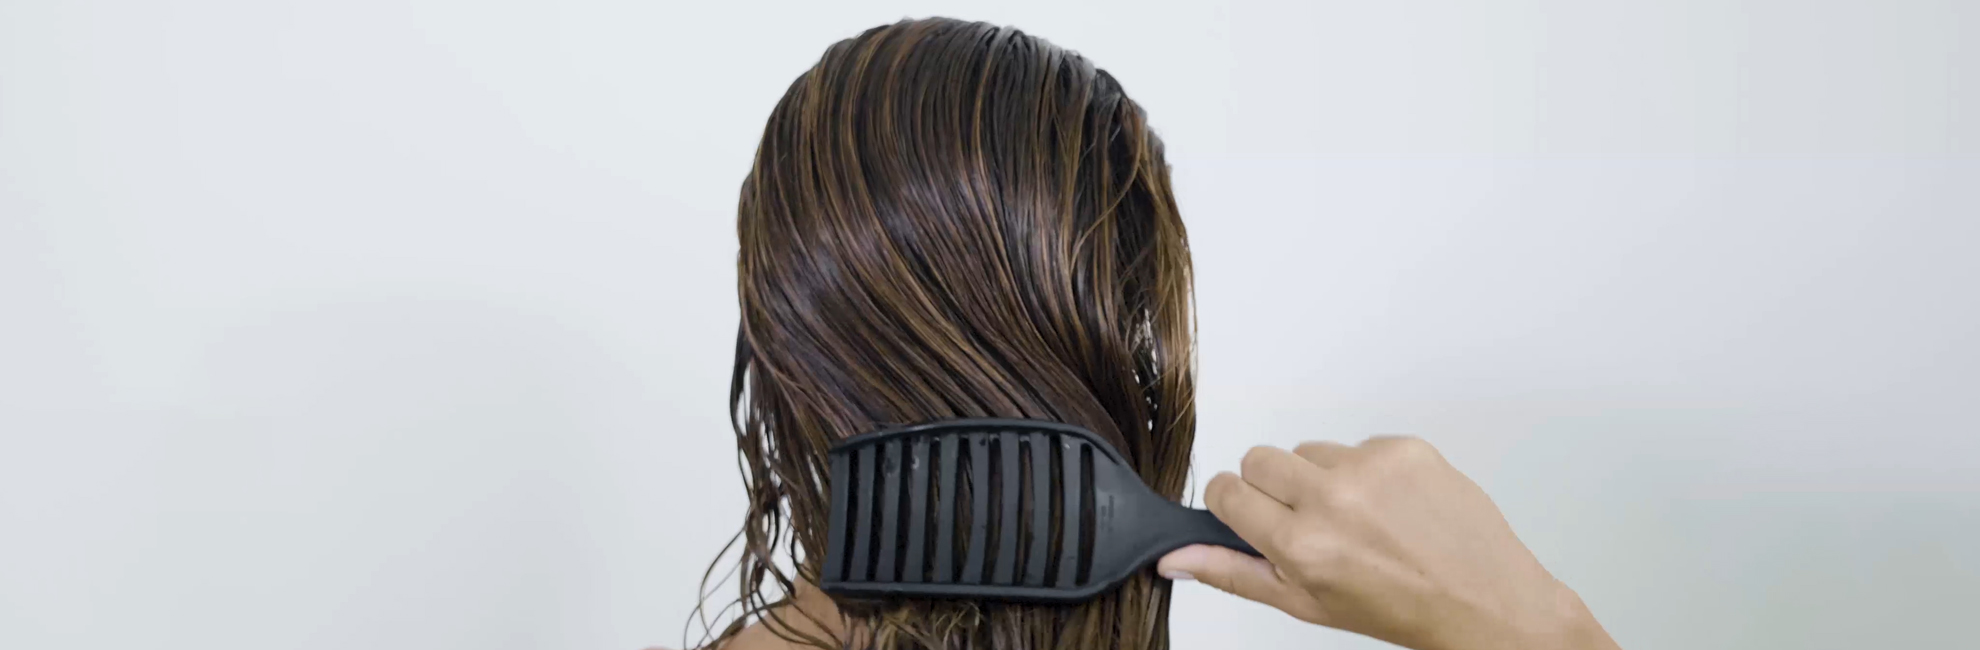 how to brush your hair